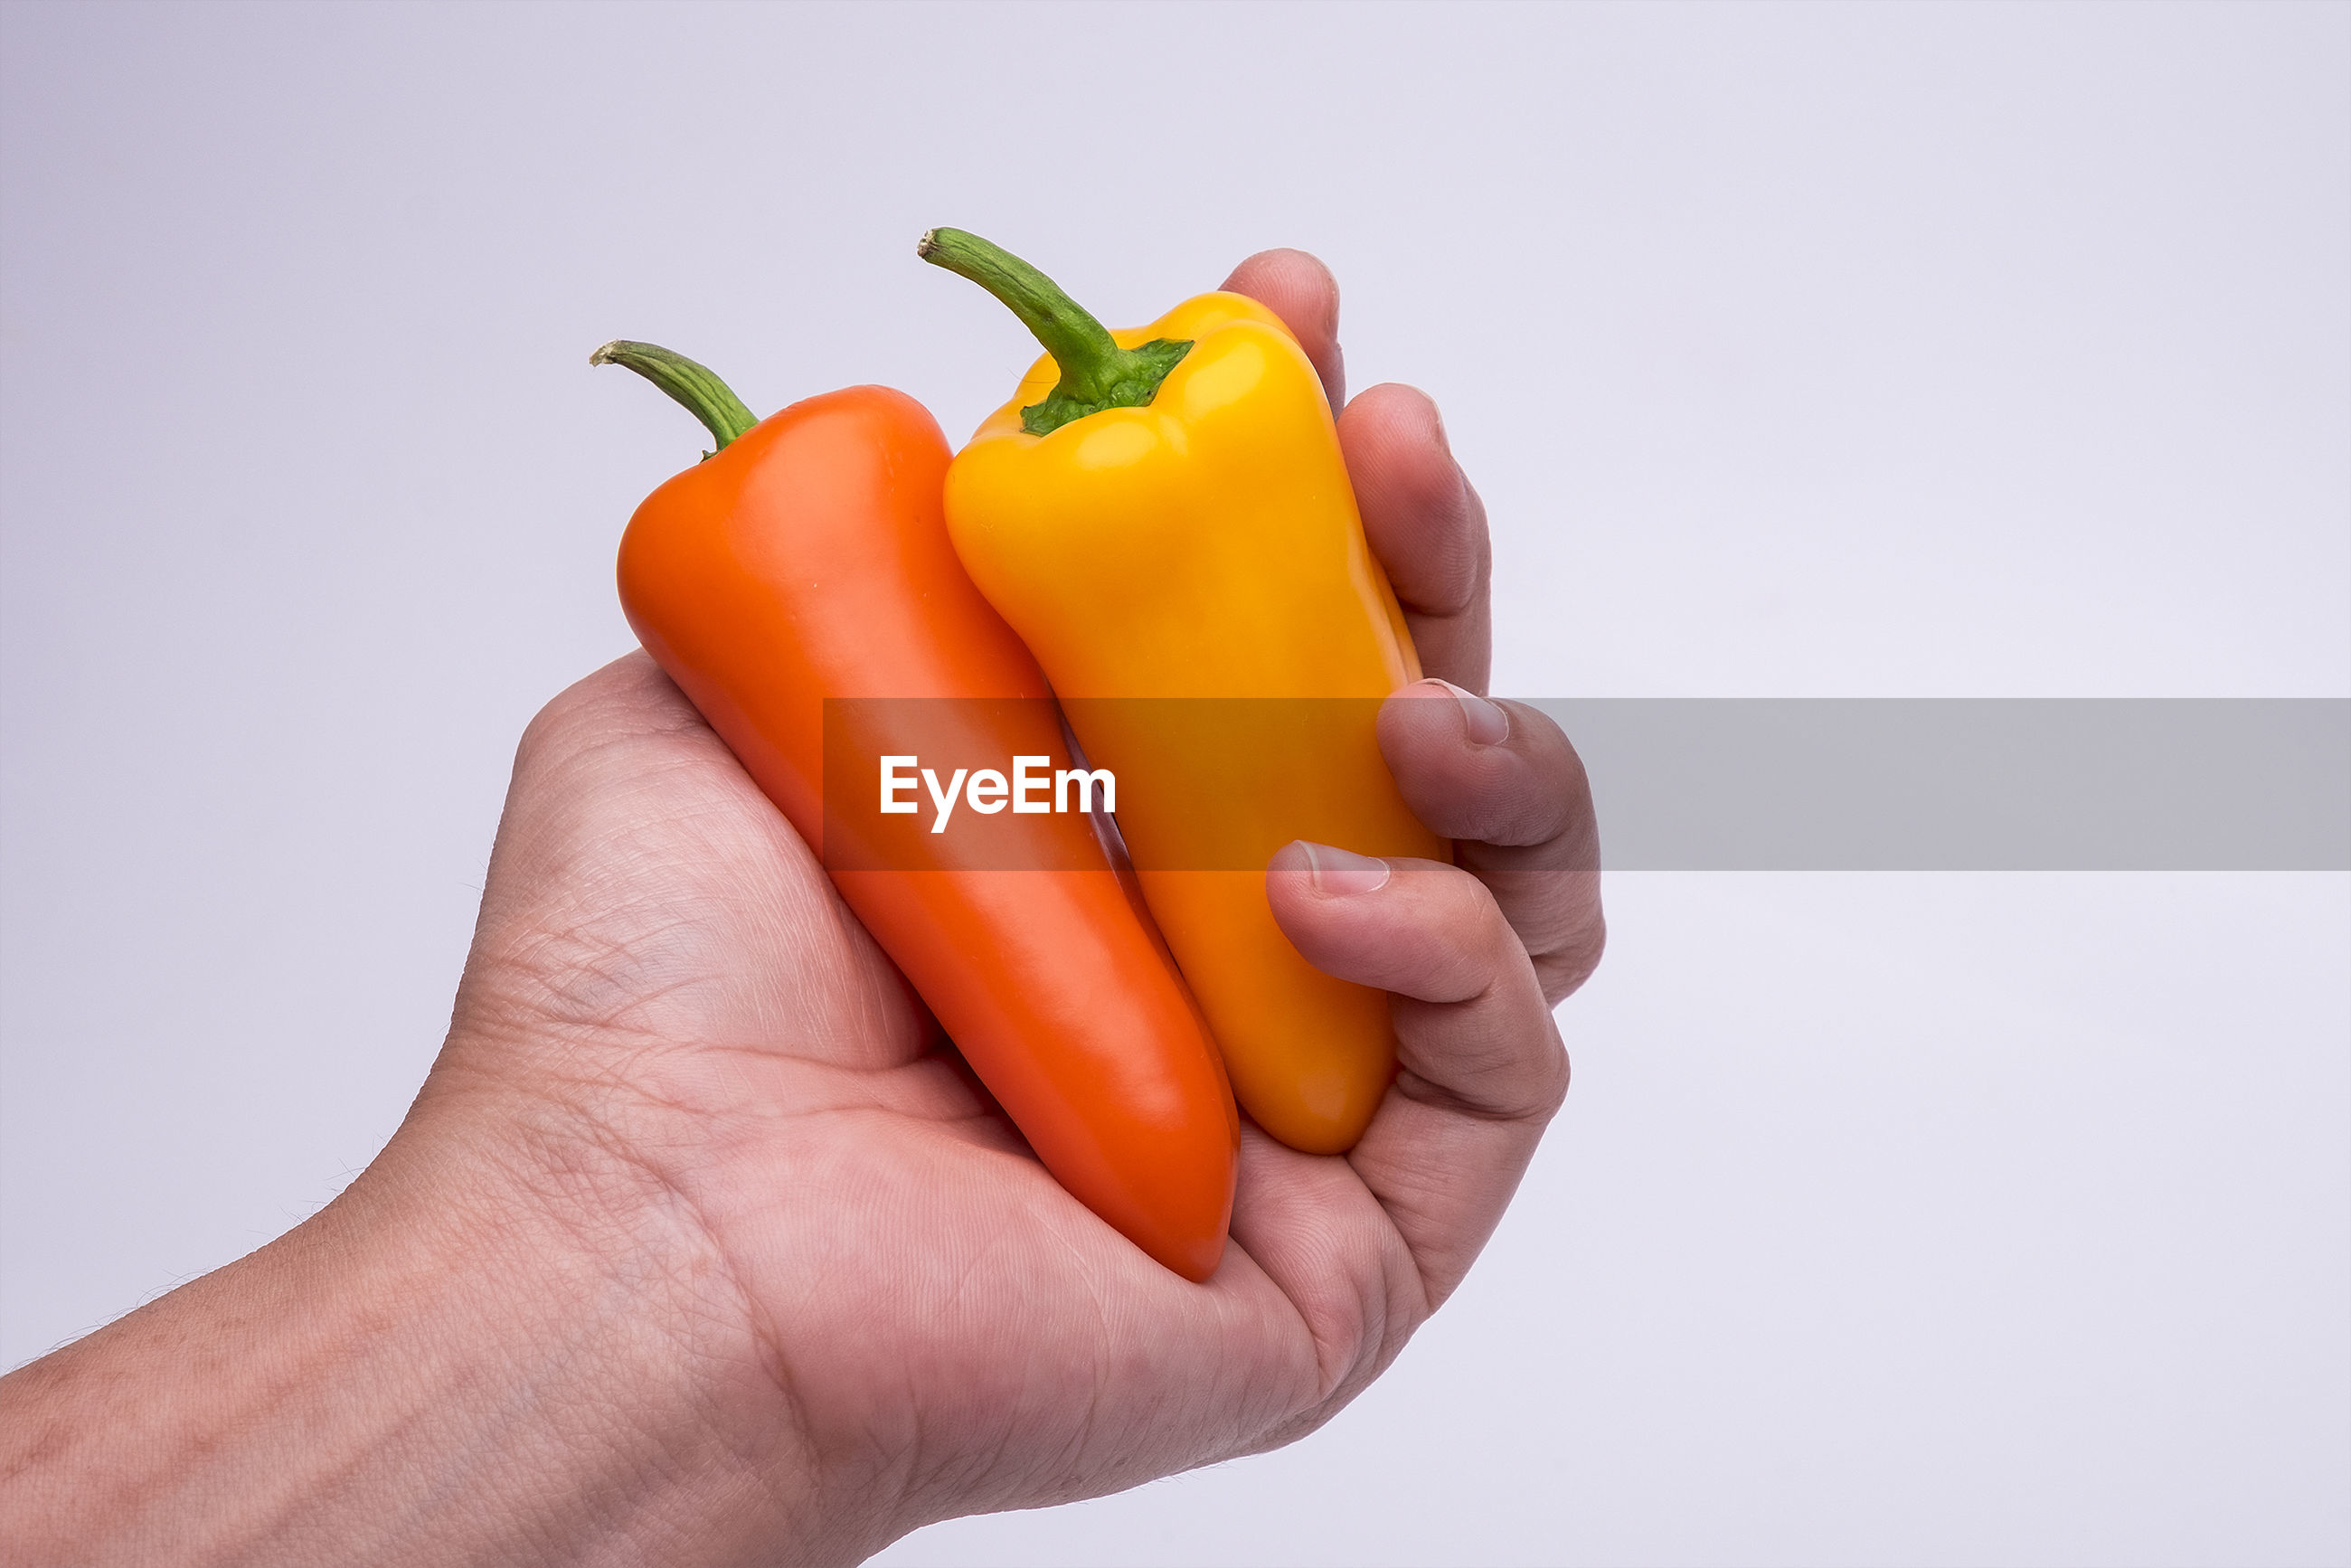 Close-up of hand holding bell peppers against white background